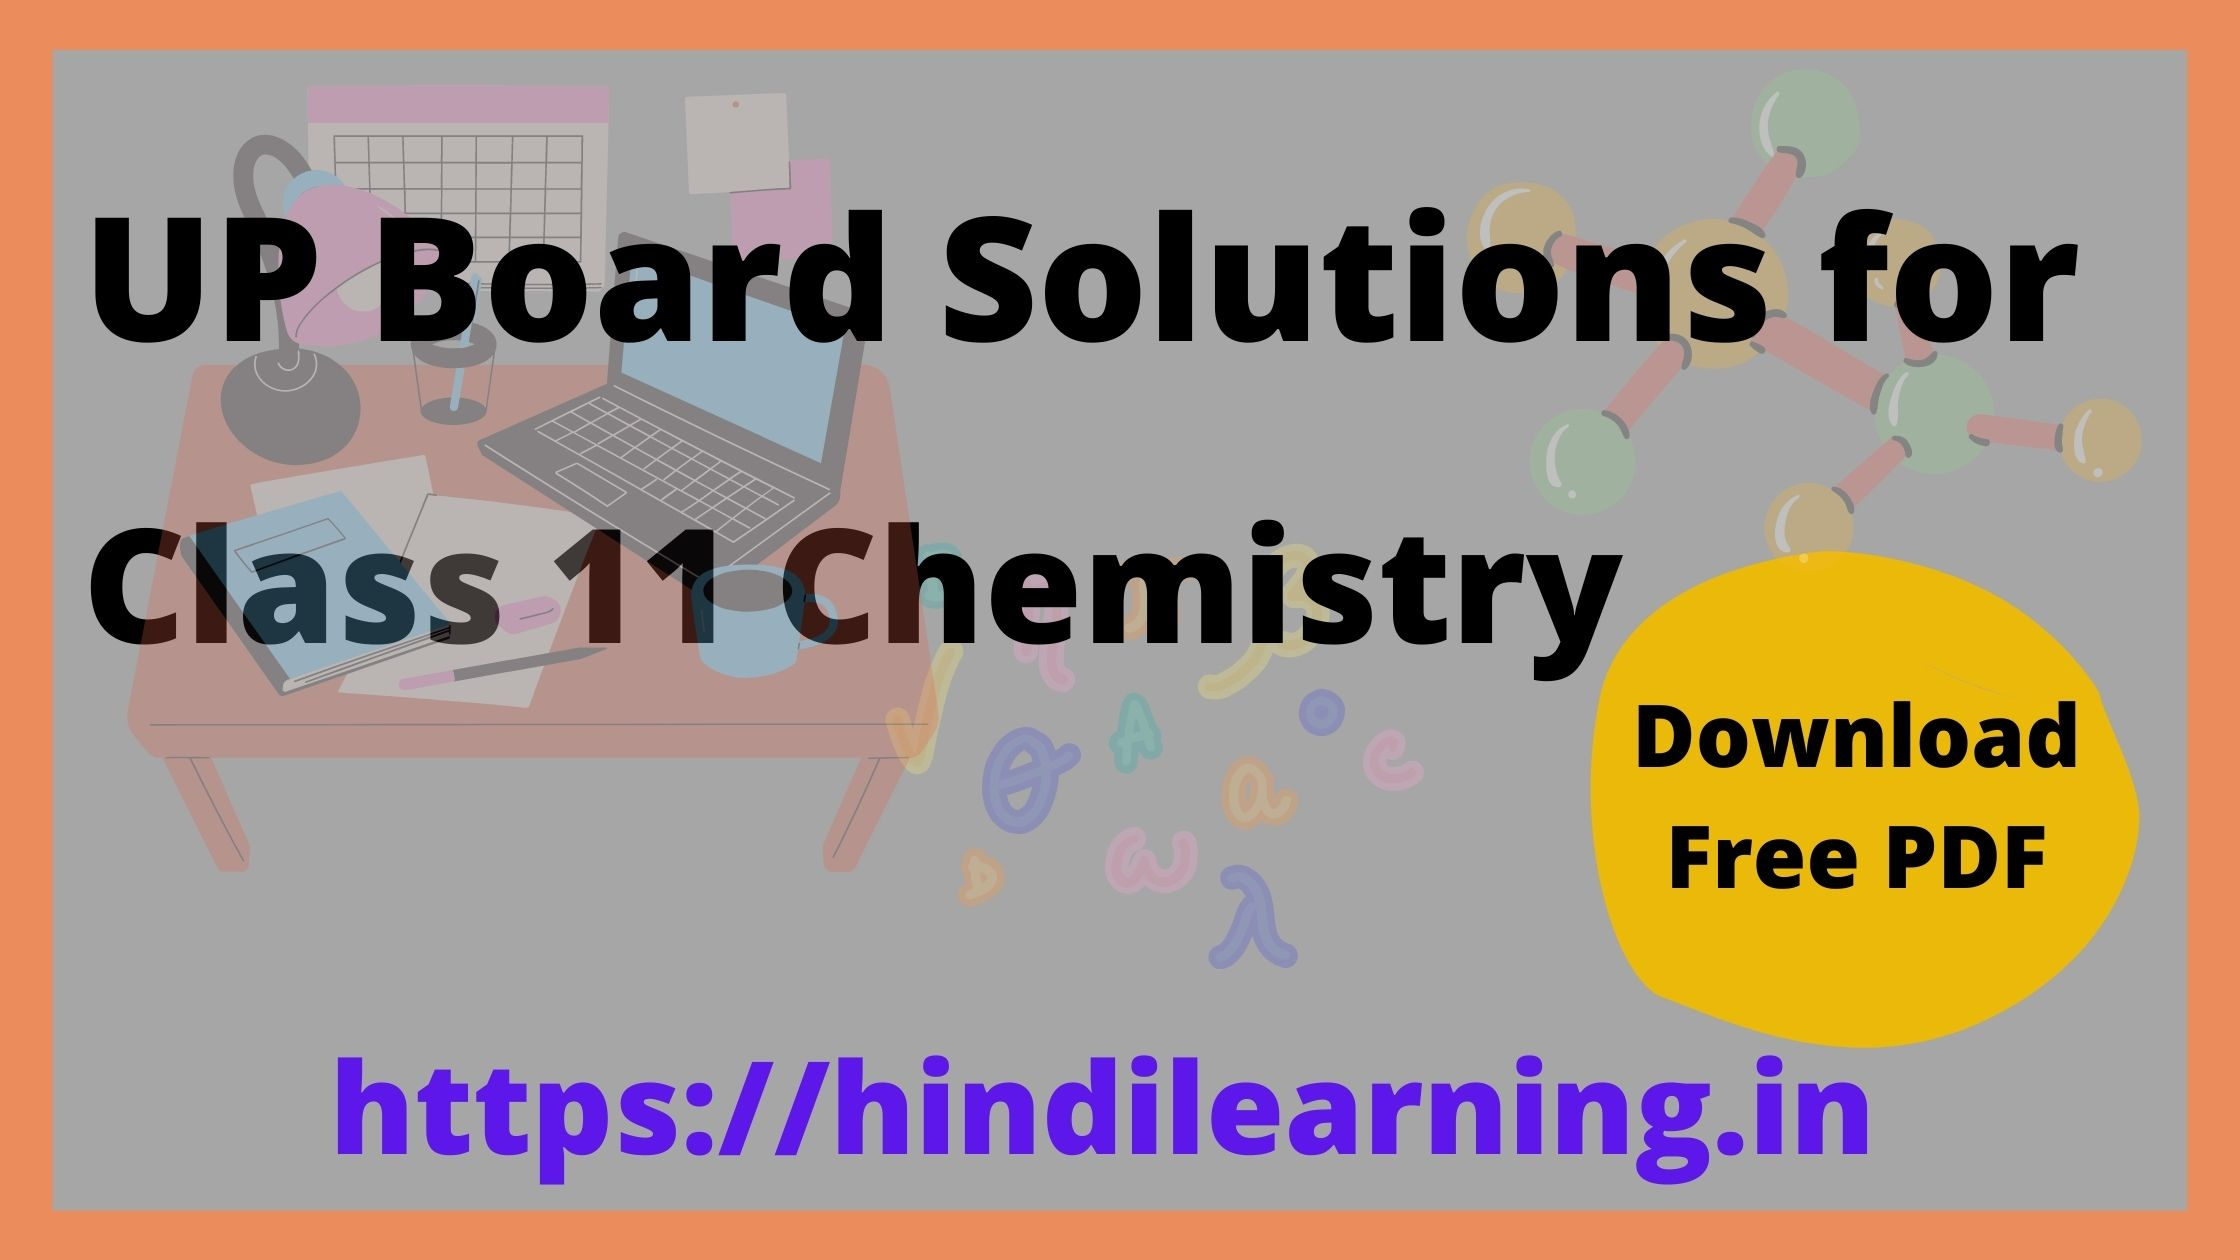 UP Board Solutions for Class 11 Chemistry रसायन विज्ञान